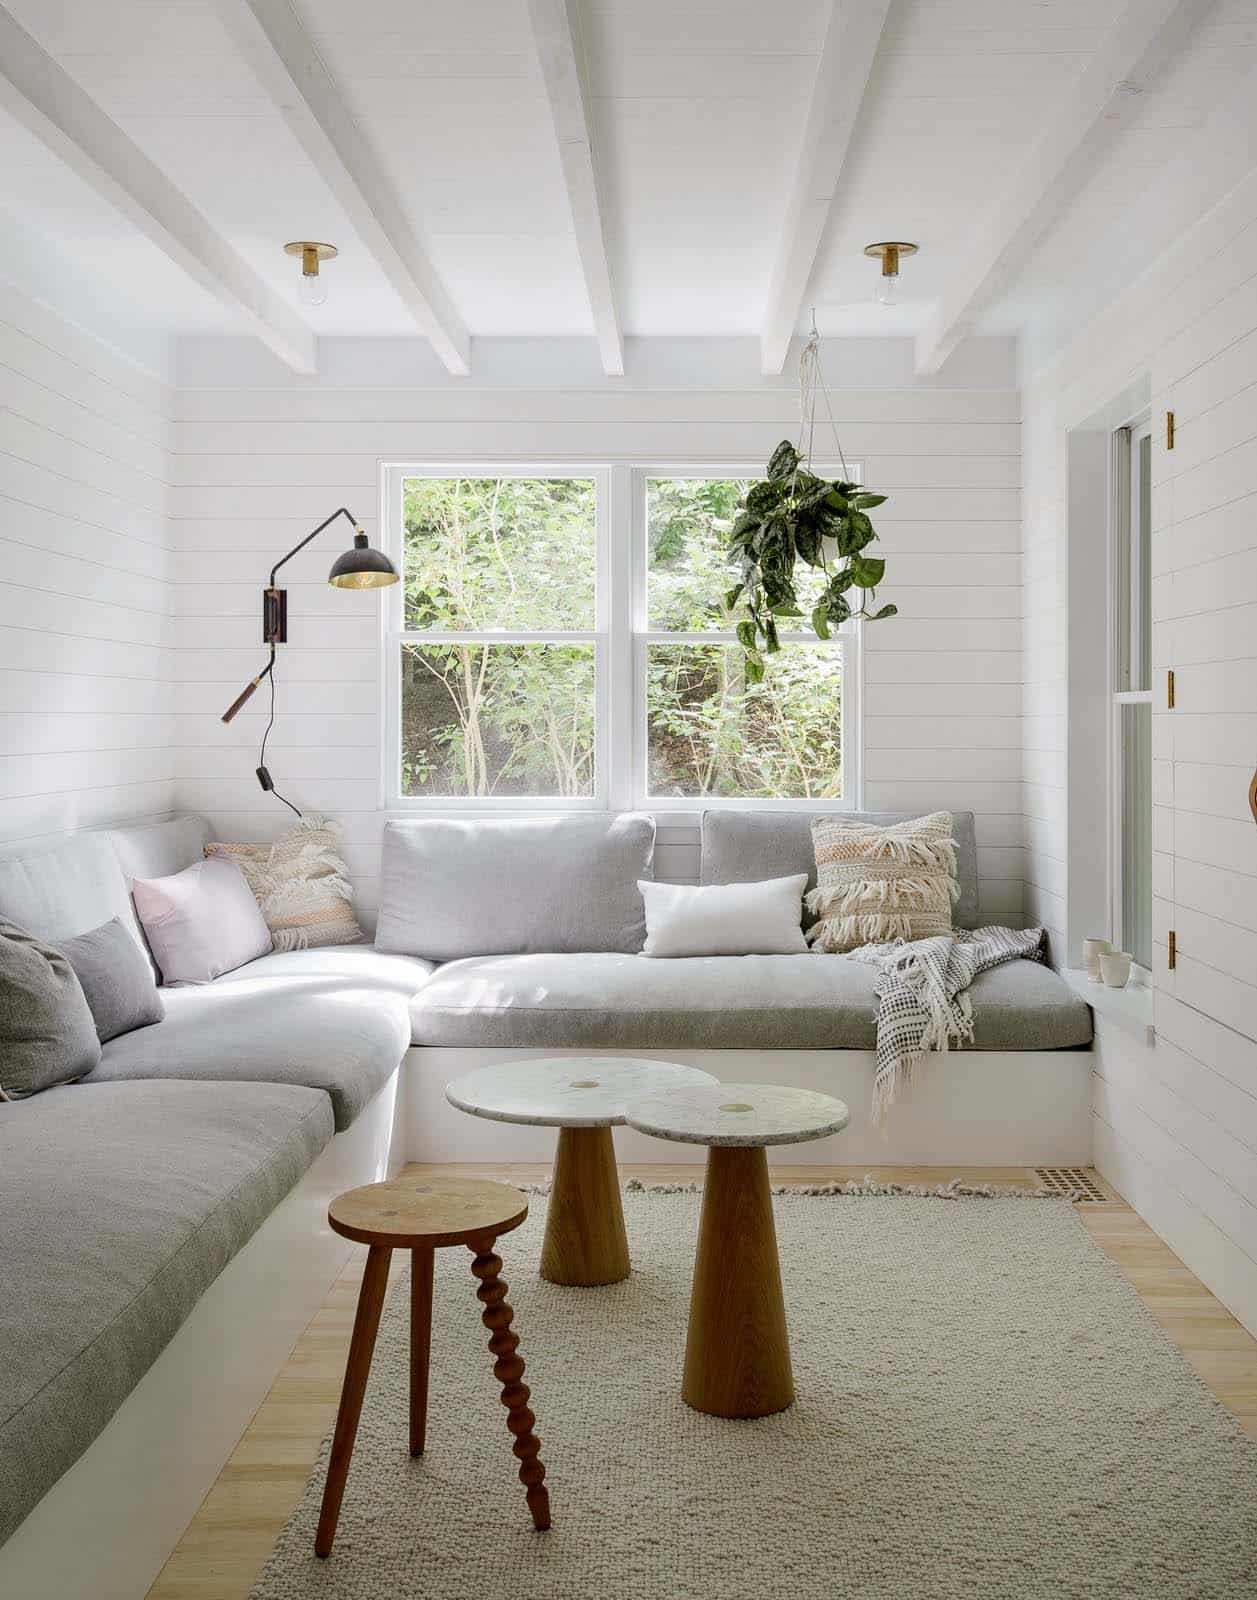 Scandinavian-Style Beach Retreat-Jessica Helgerson Interior Design-07-1 Kindesign